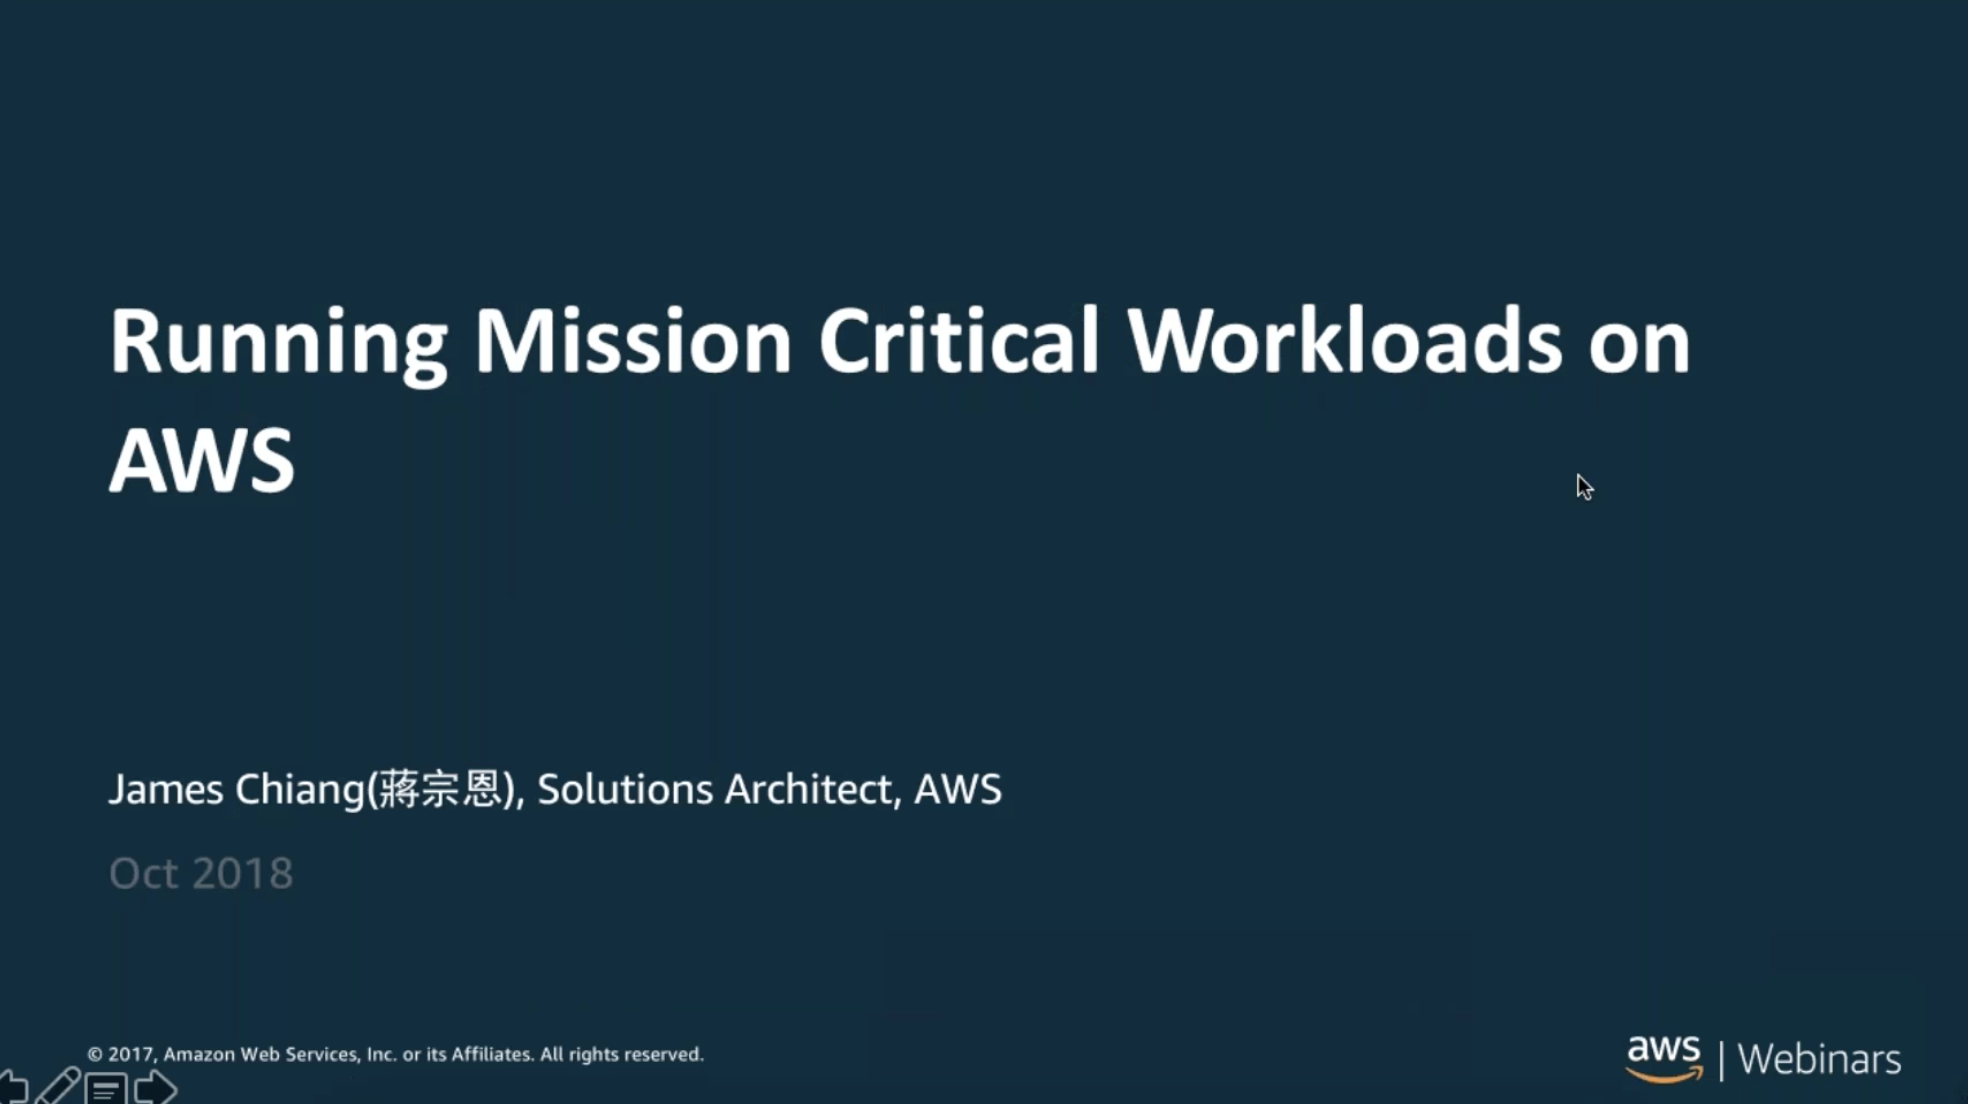 20181025-tw-running-mission-critical-workloads-on-aws